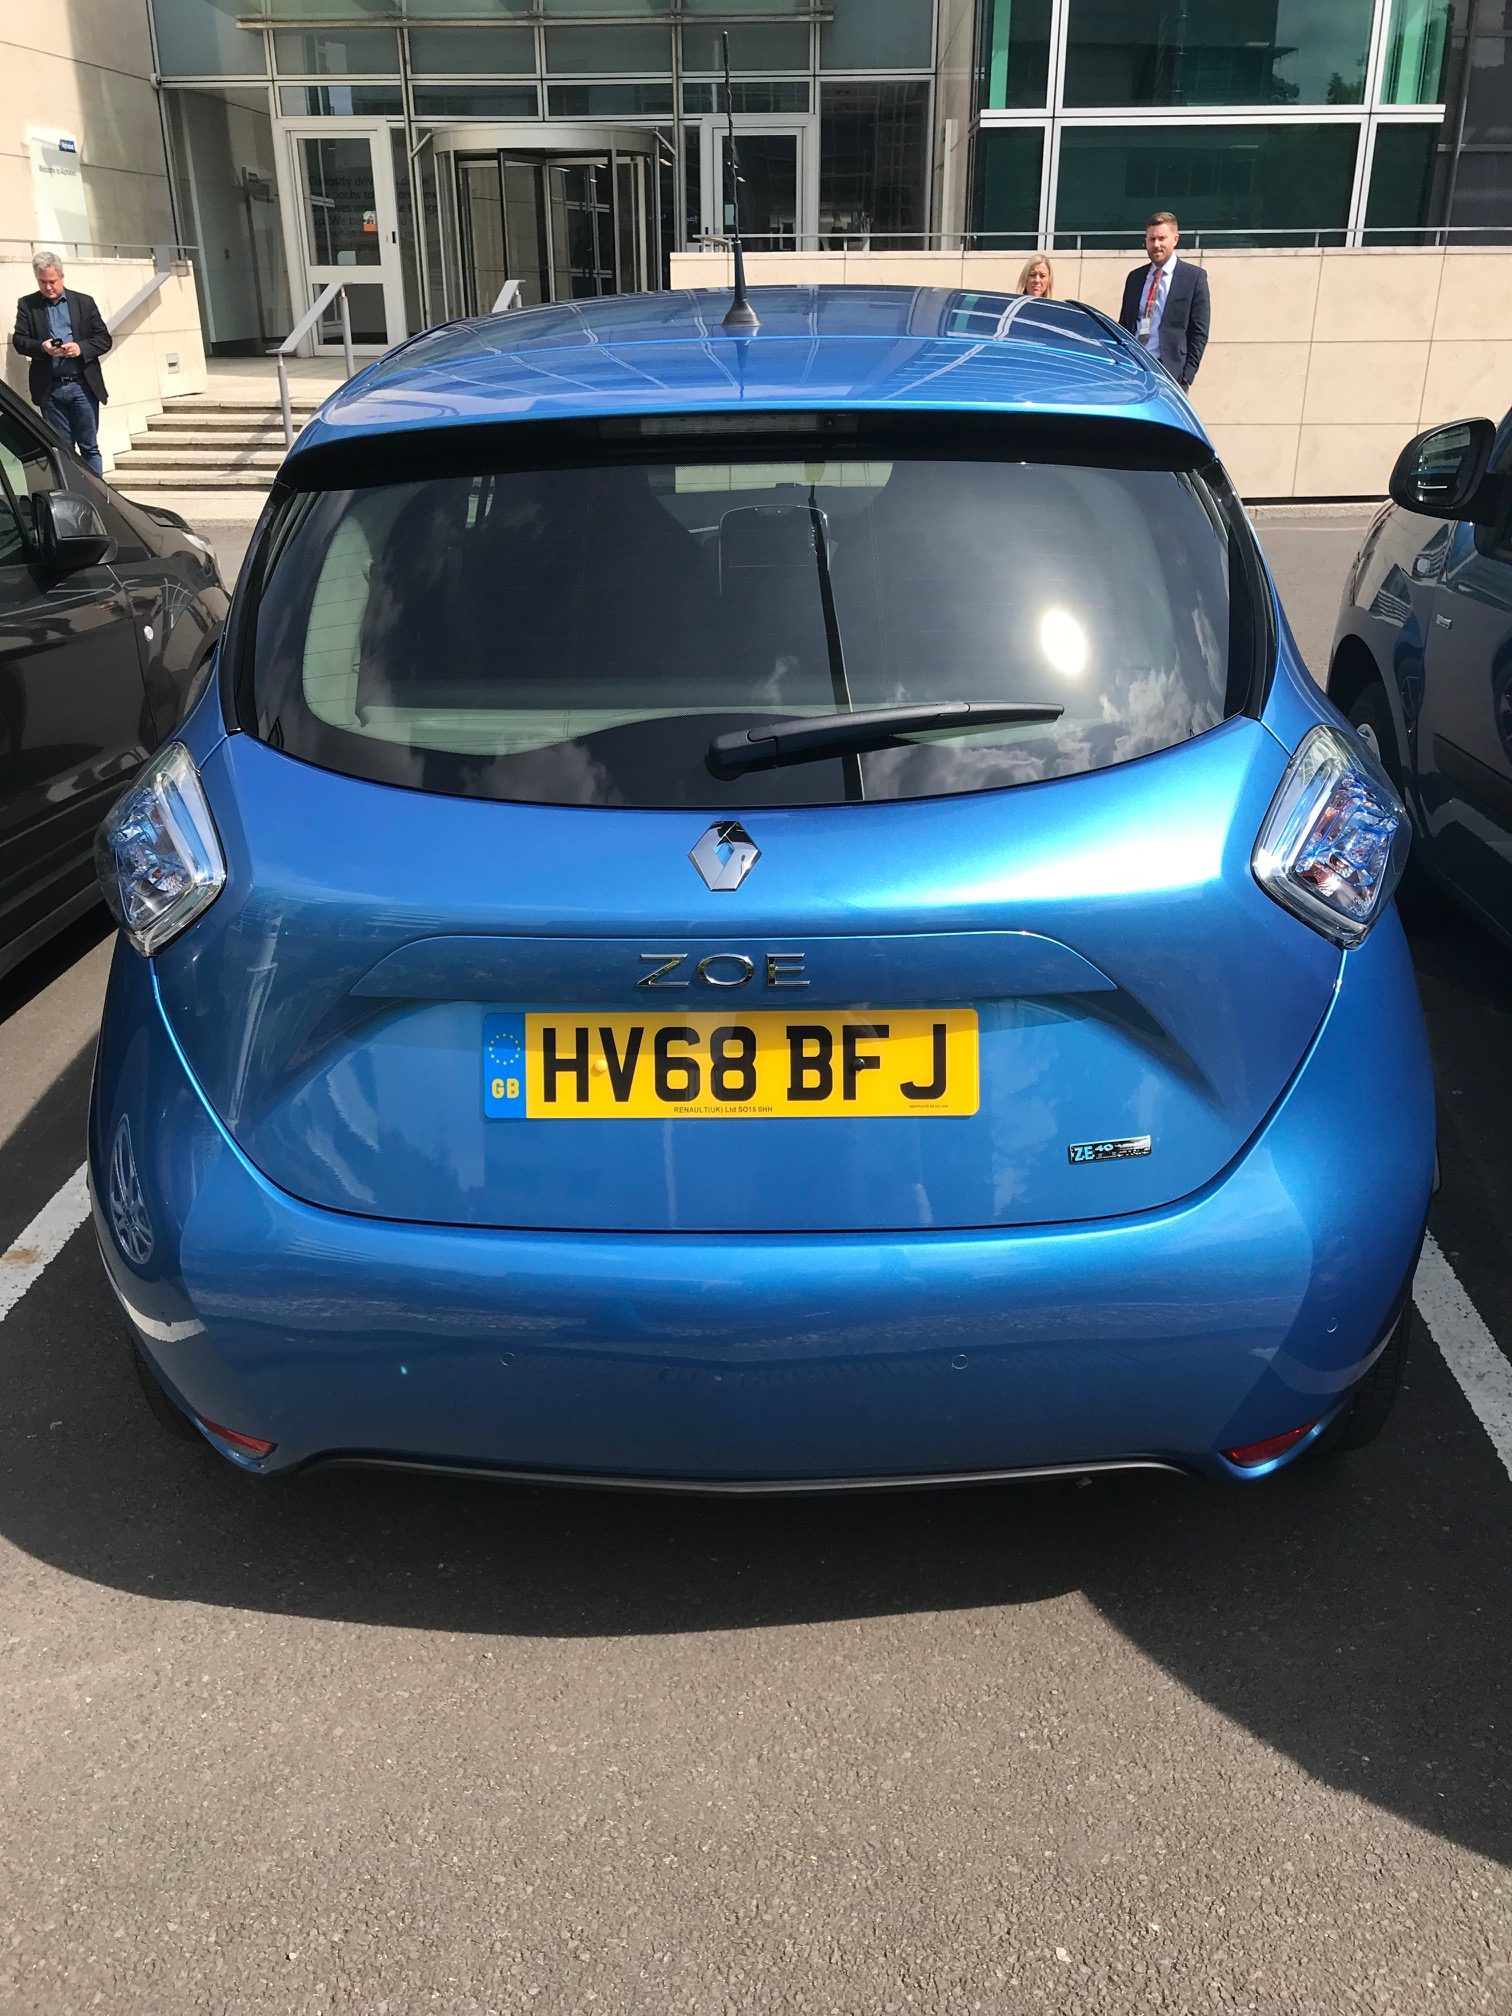 Renault ZOE HATCHBACK 80kW i Dynamique Nav R110 40kWh 5dr Auto Car Leasing Electric Cars